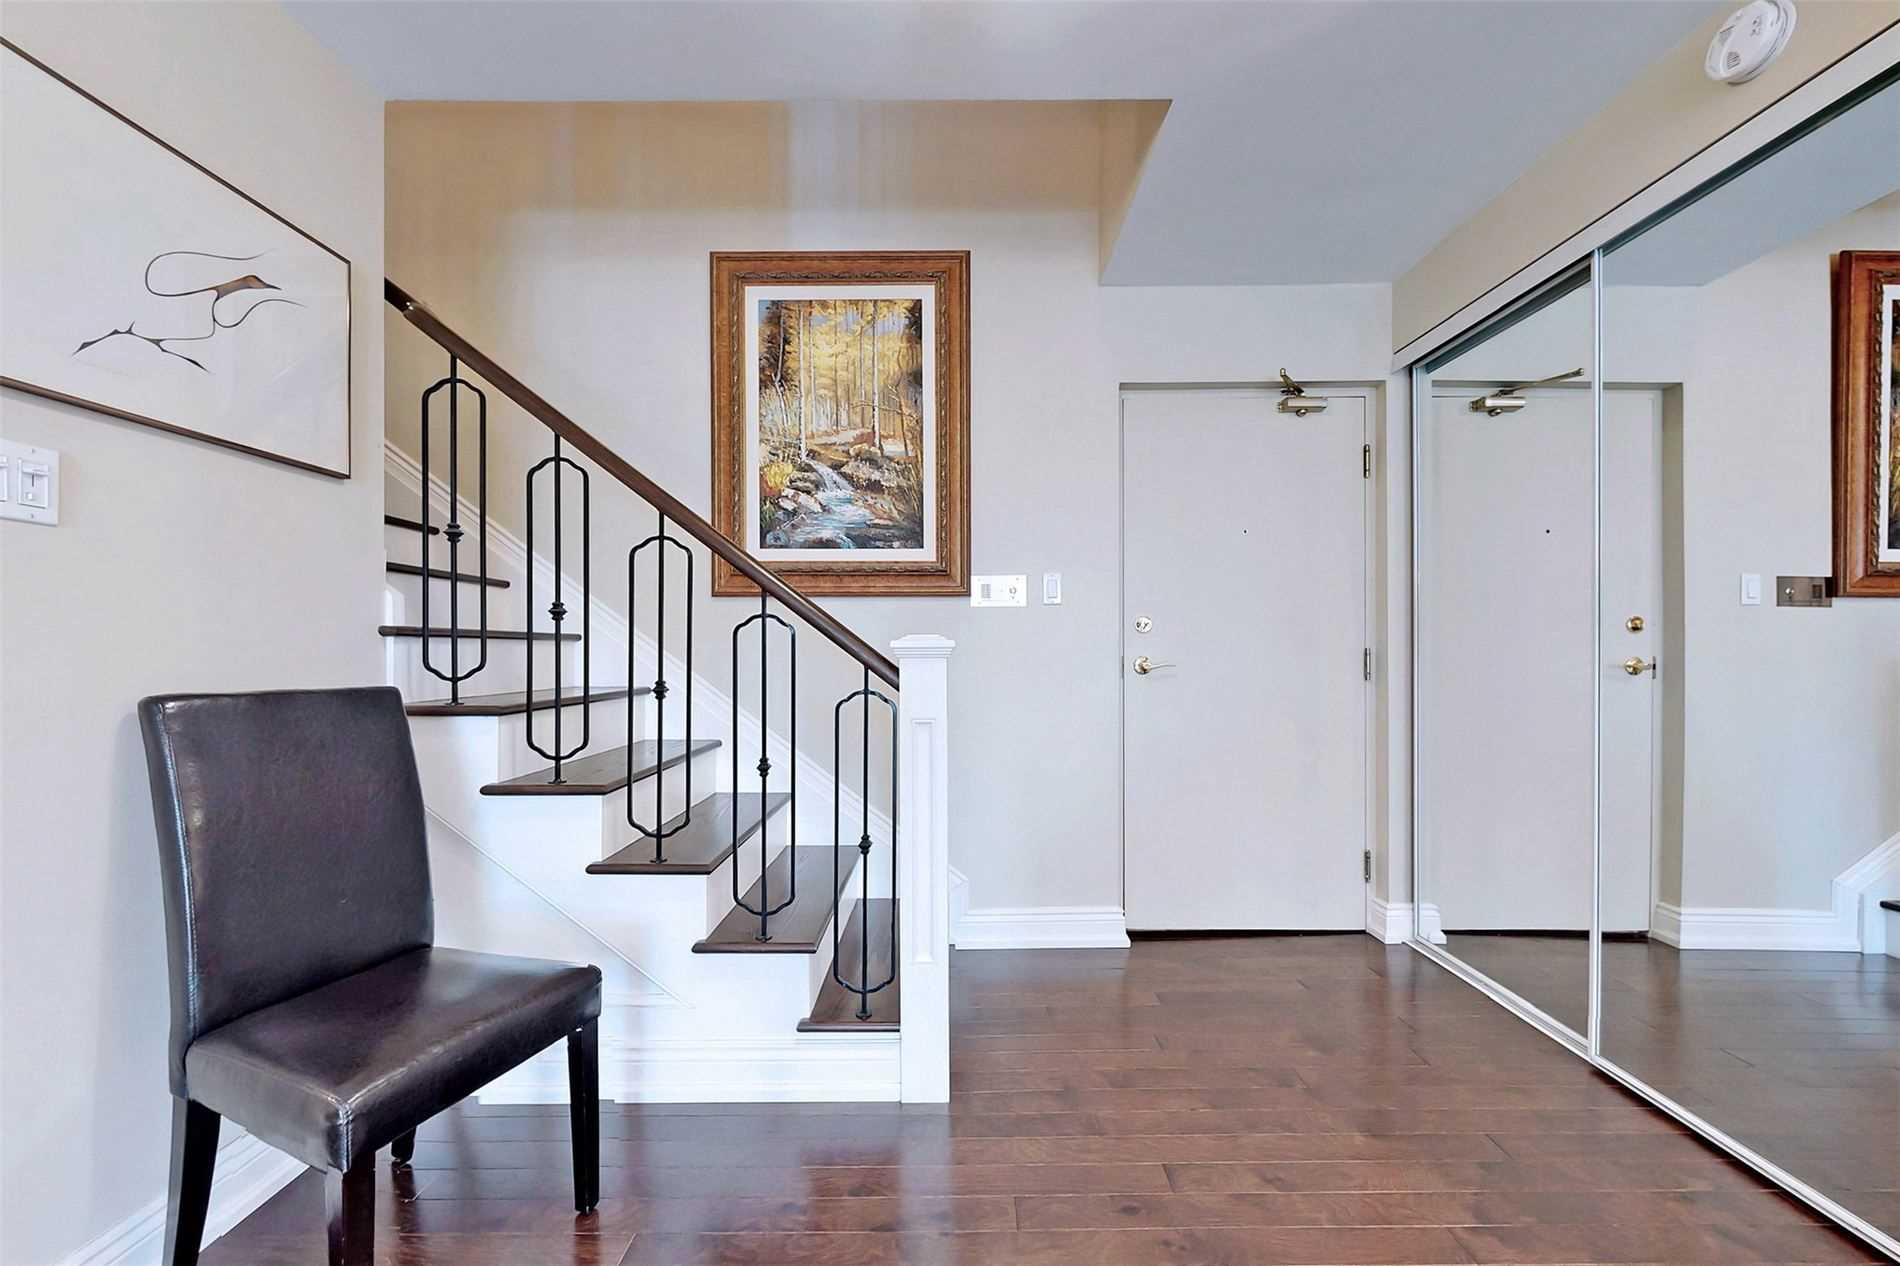 Image 9 of 40 showing inside of 2 Bedroom Condo Apt 2-Storey for Sale at 25 Cumberland Lane Unit# 105, Ajax L1S7K1